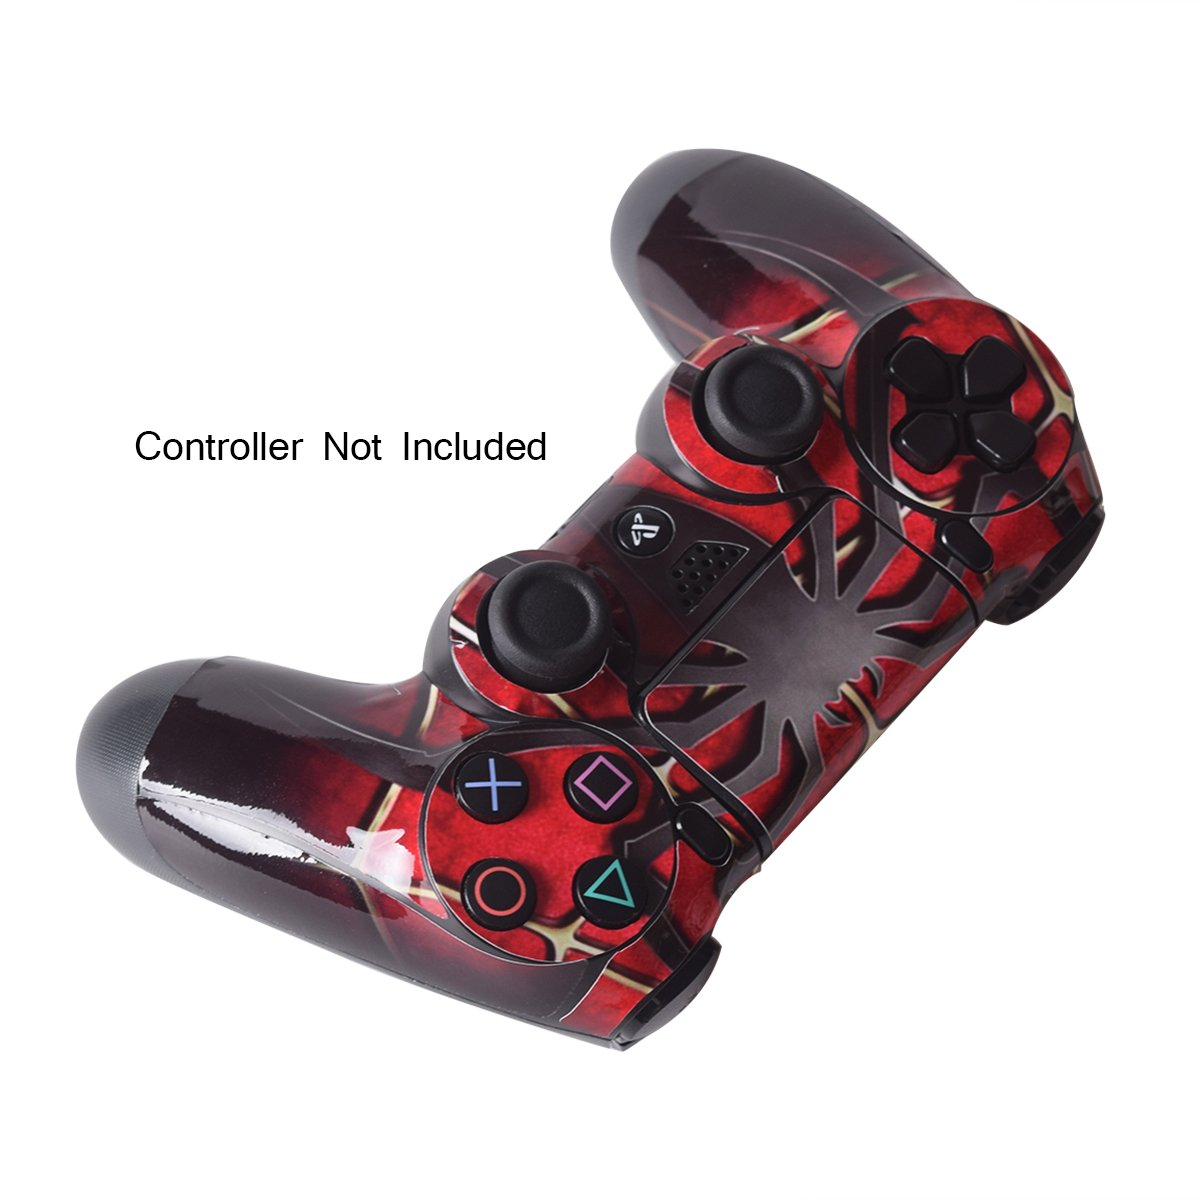 PS4 Skins Playstation 4 Games Sony PS4 Games Decals Custom PS4 Controller Stickers PS4 Remote Controller Skin PS4 Remote Play Sticker Playstation 4 Controller Dualshock 4 Vinyl Decal Widow Maker Spider